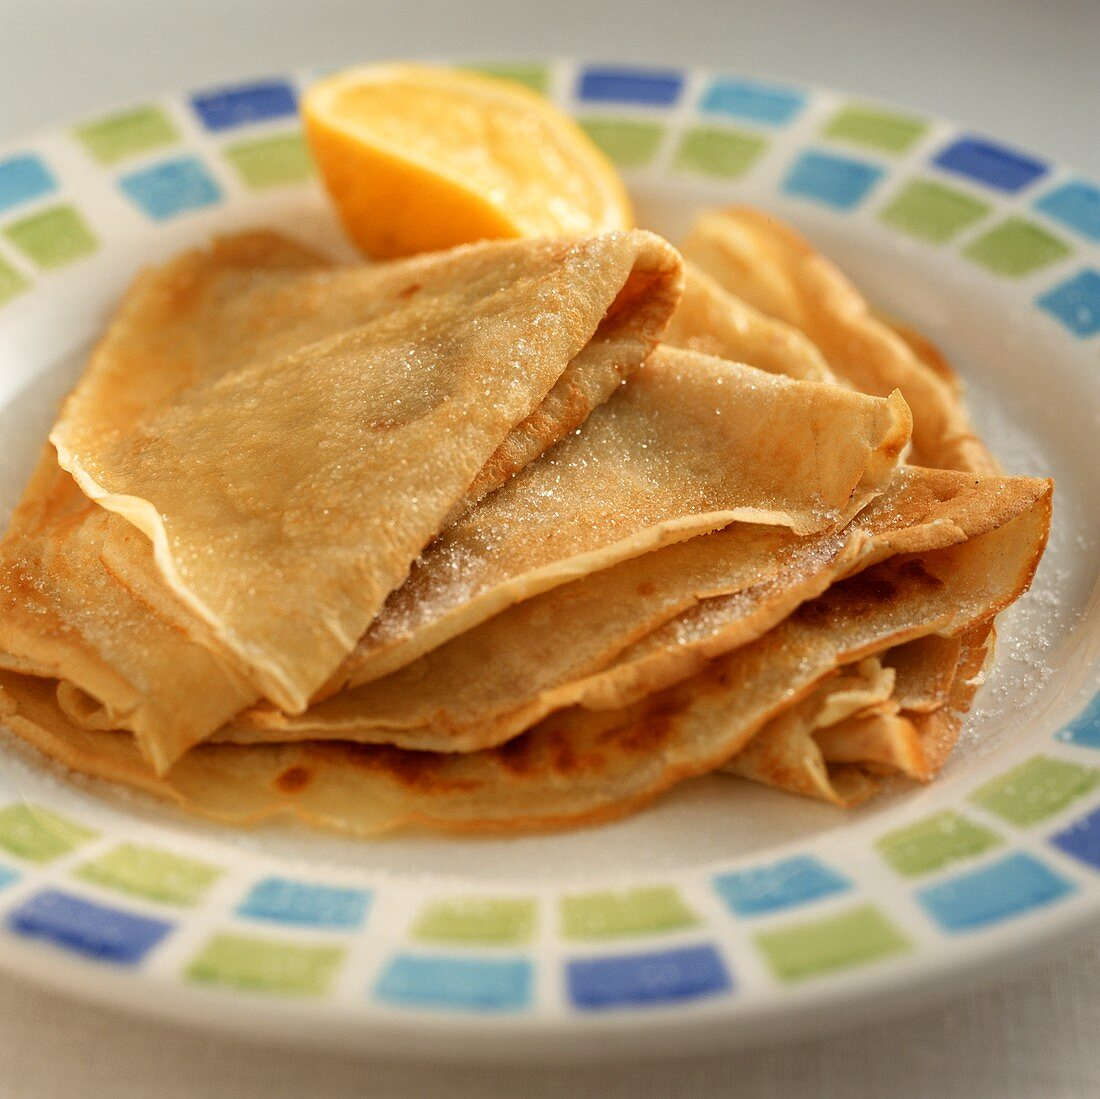 Several orange crepes on a plate